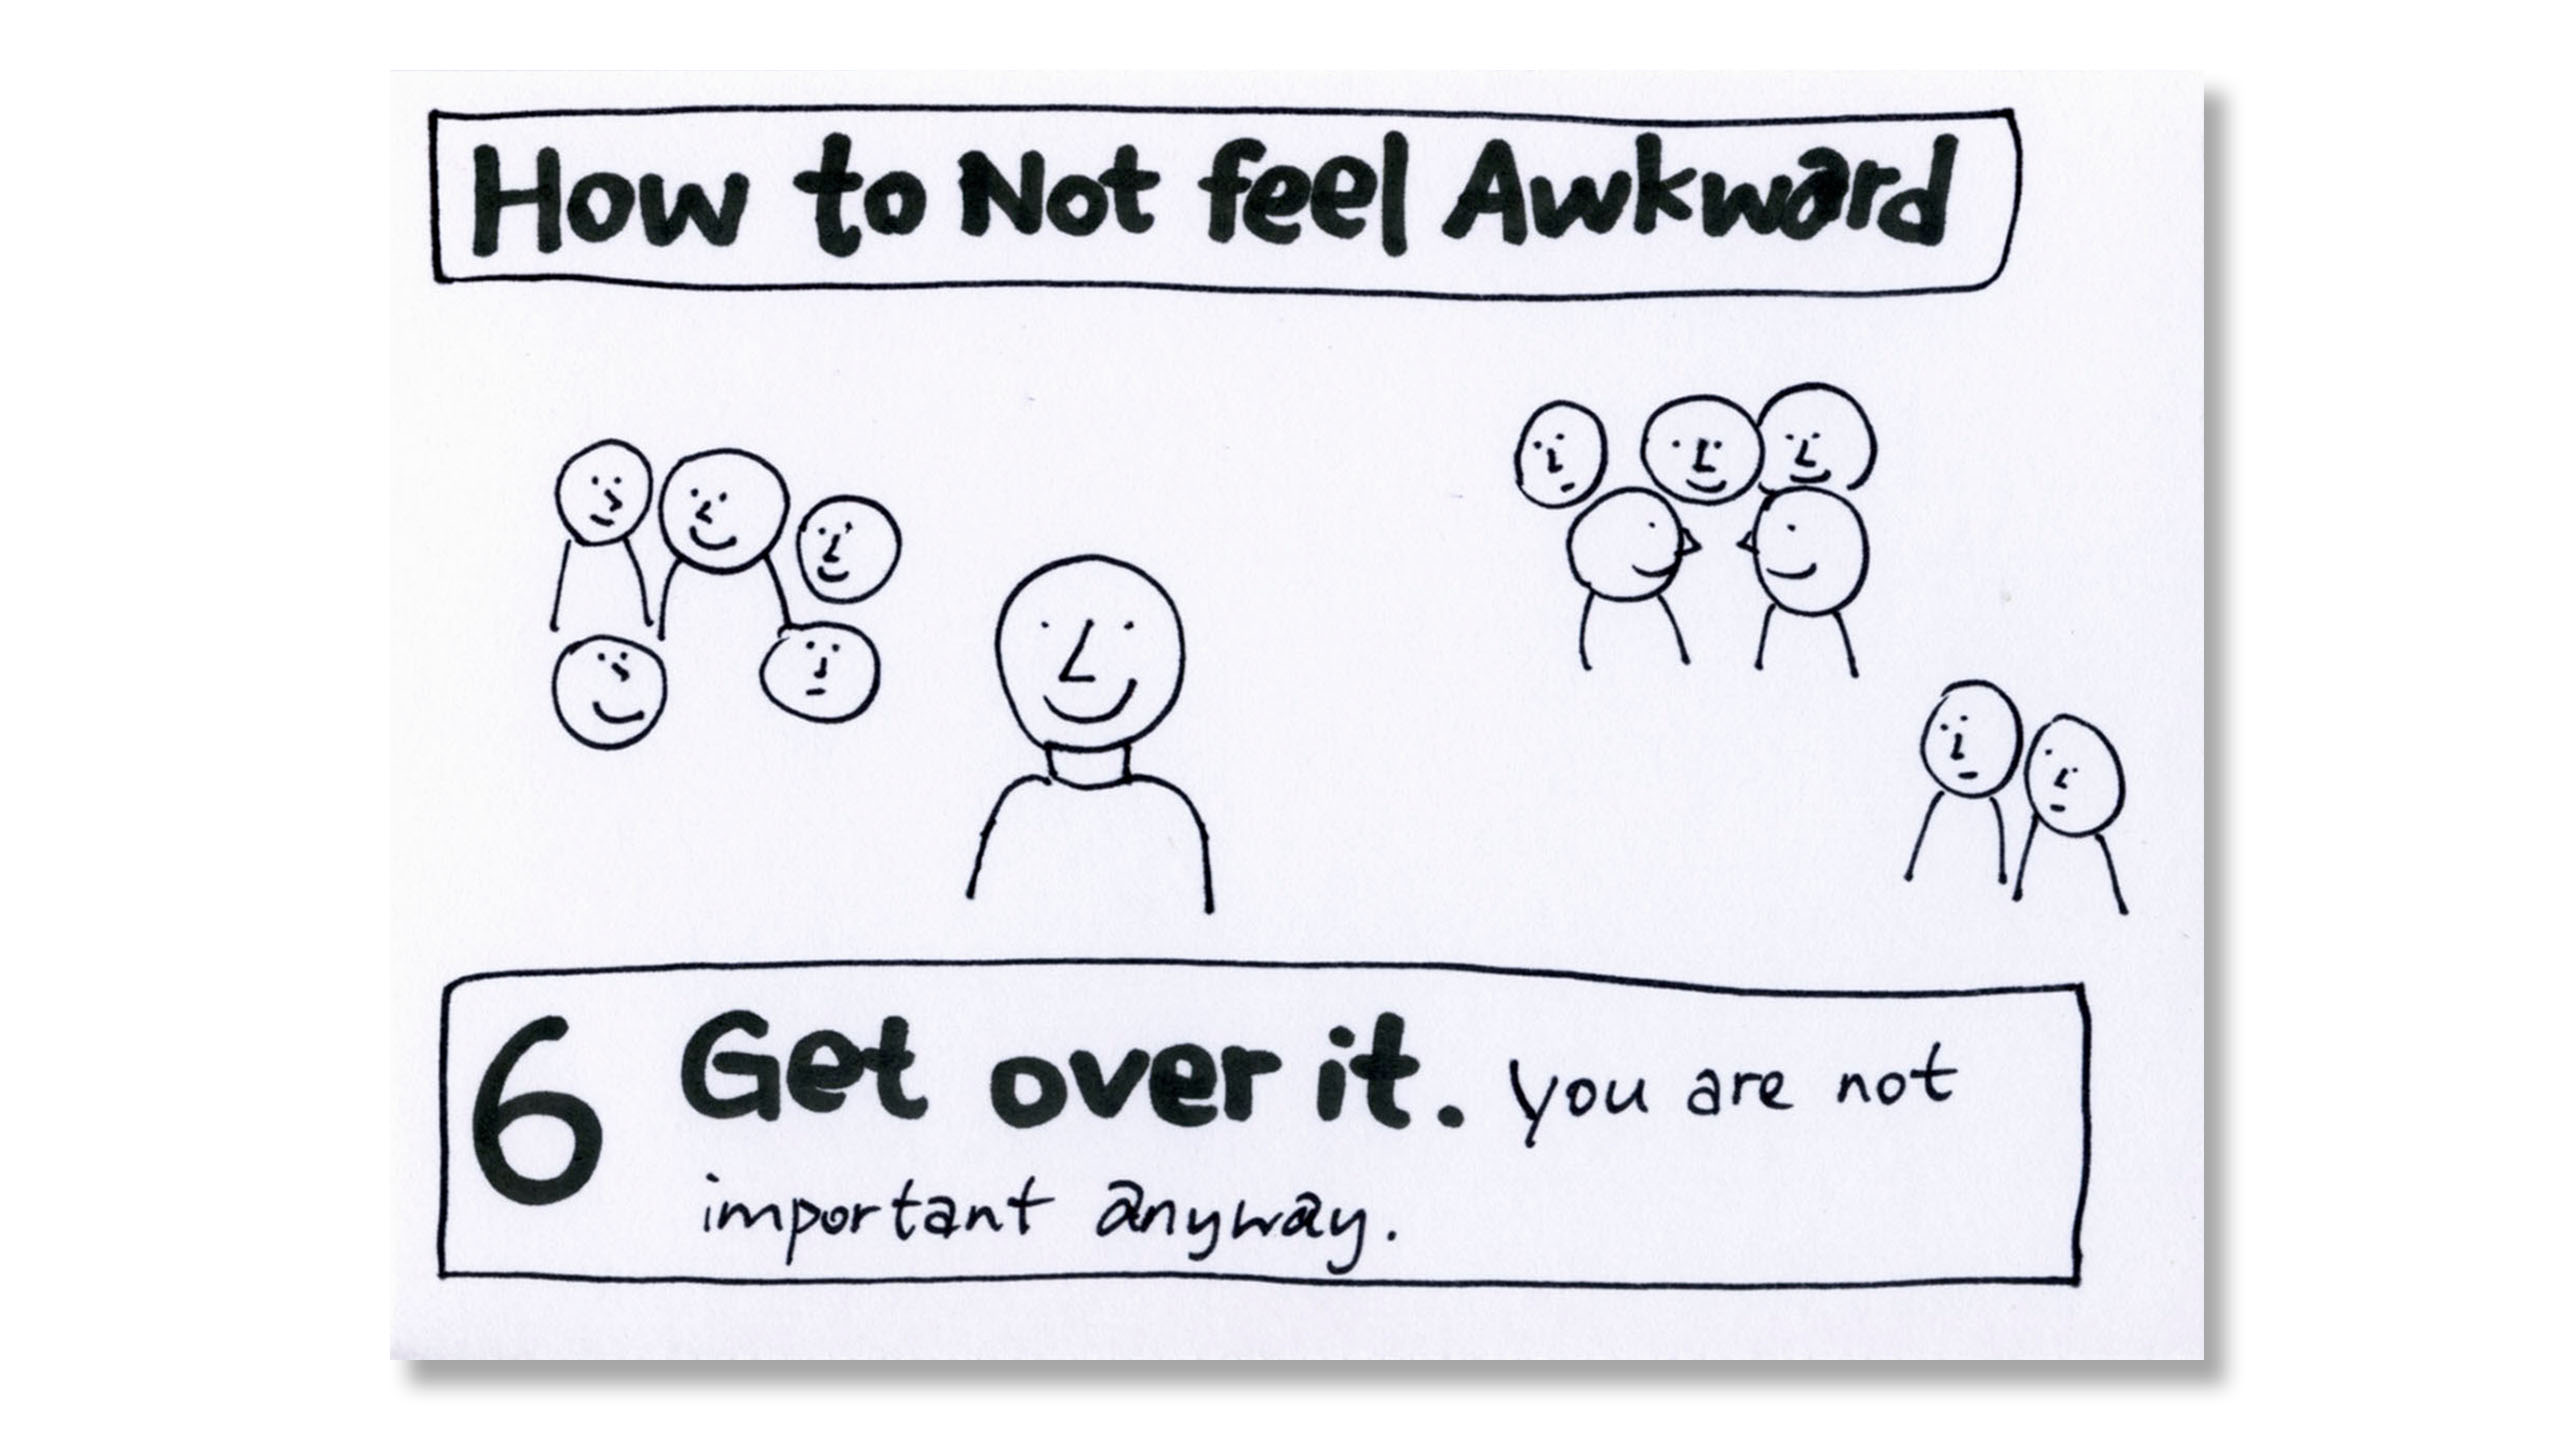 How to Not Feel Awkward